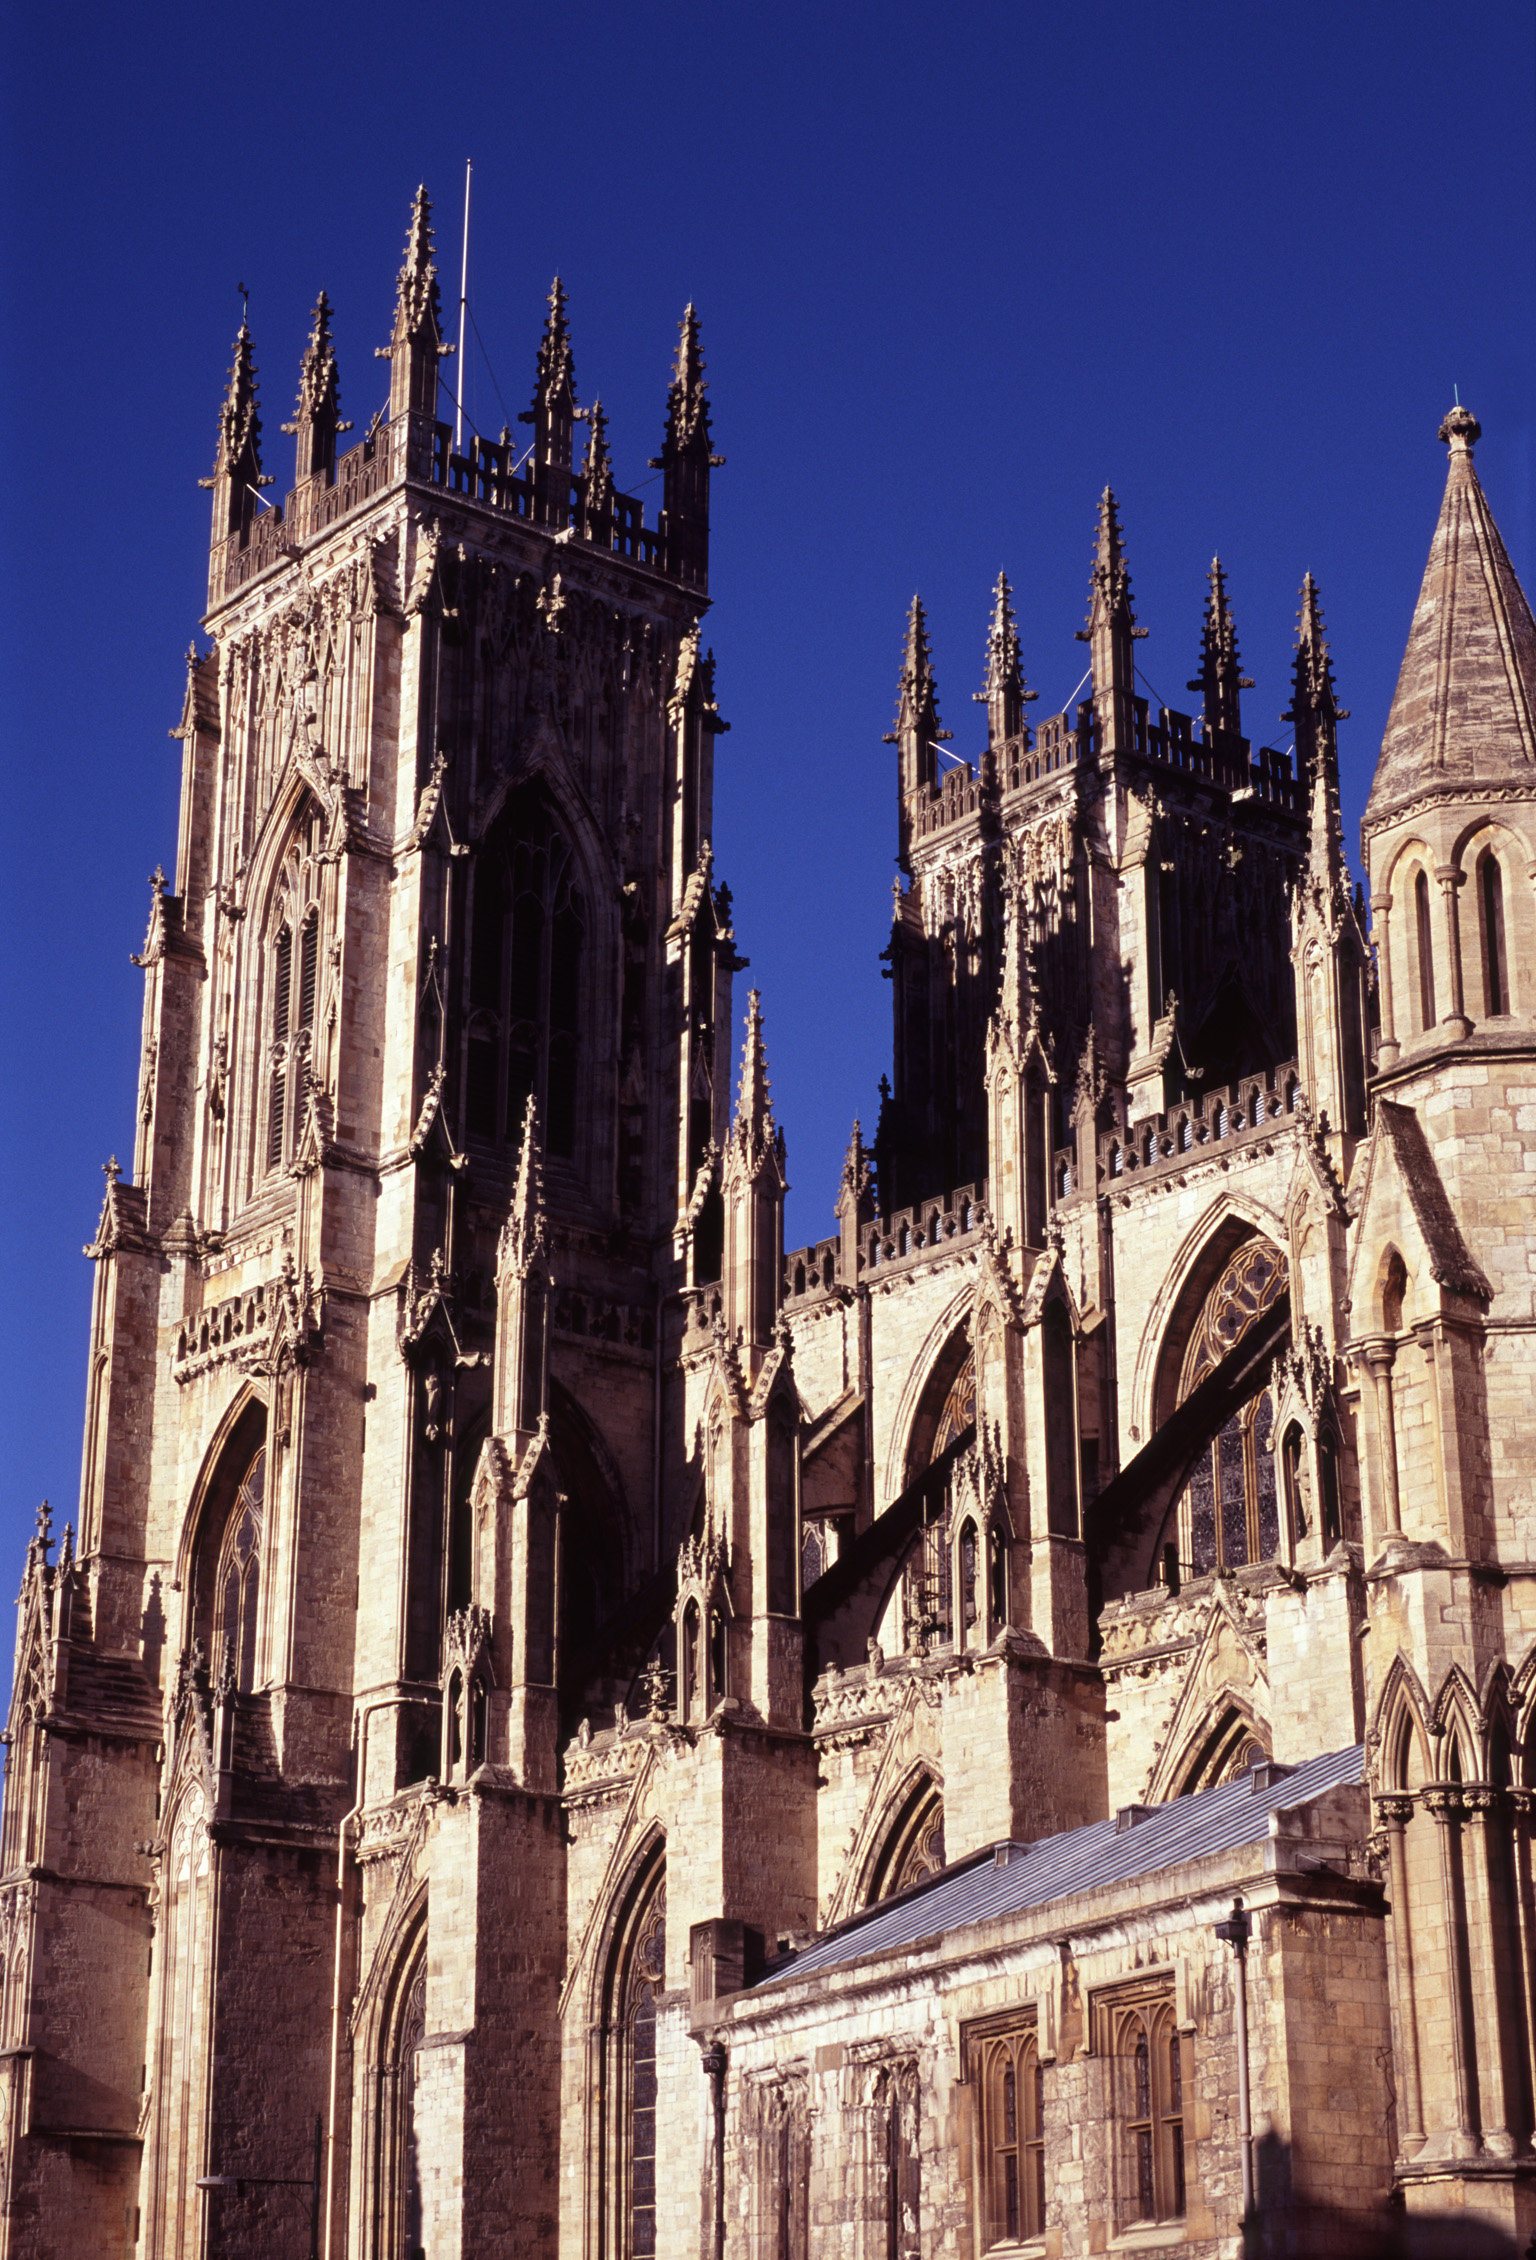 A view of York Minster, largest gothic cathedral in northern europe